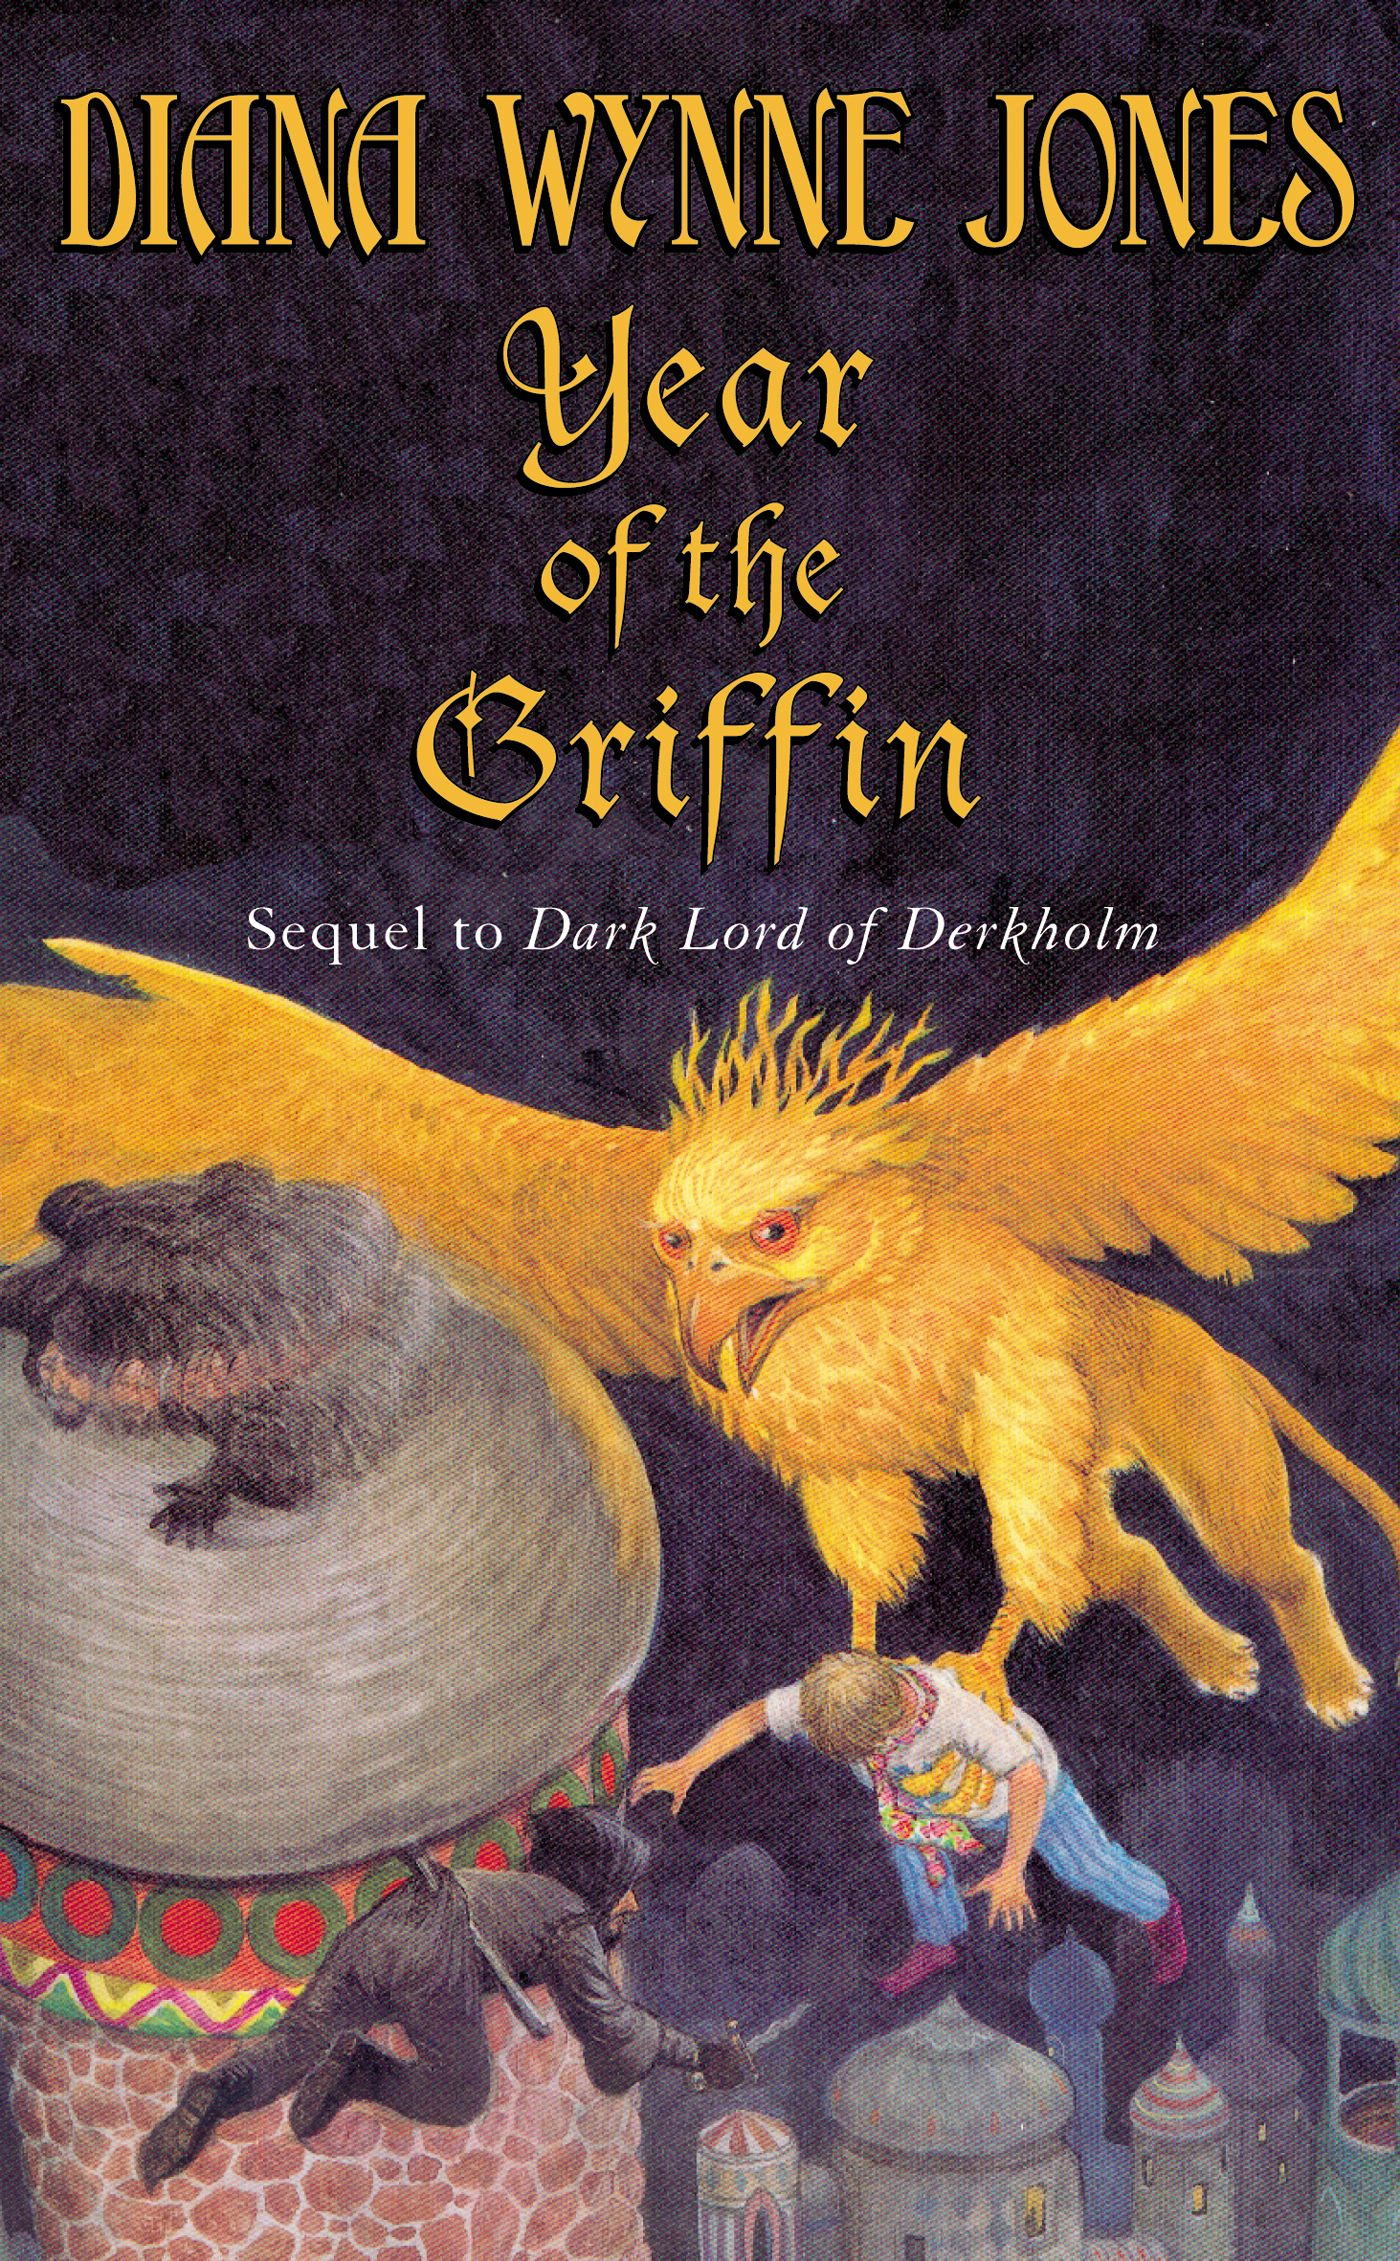 Year of the Griffin By: Diana Wynne Jones